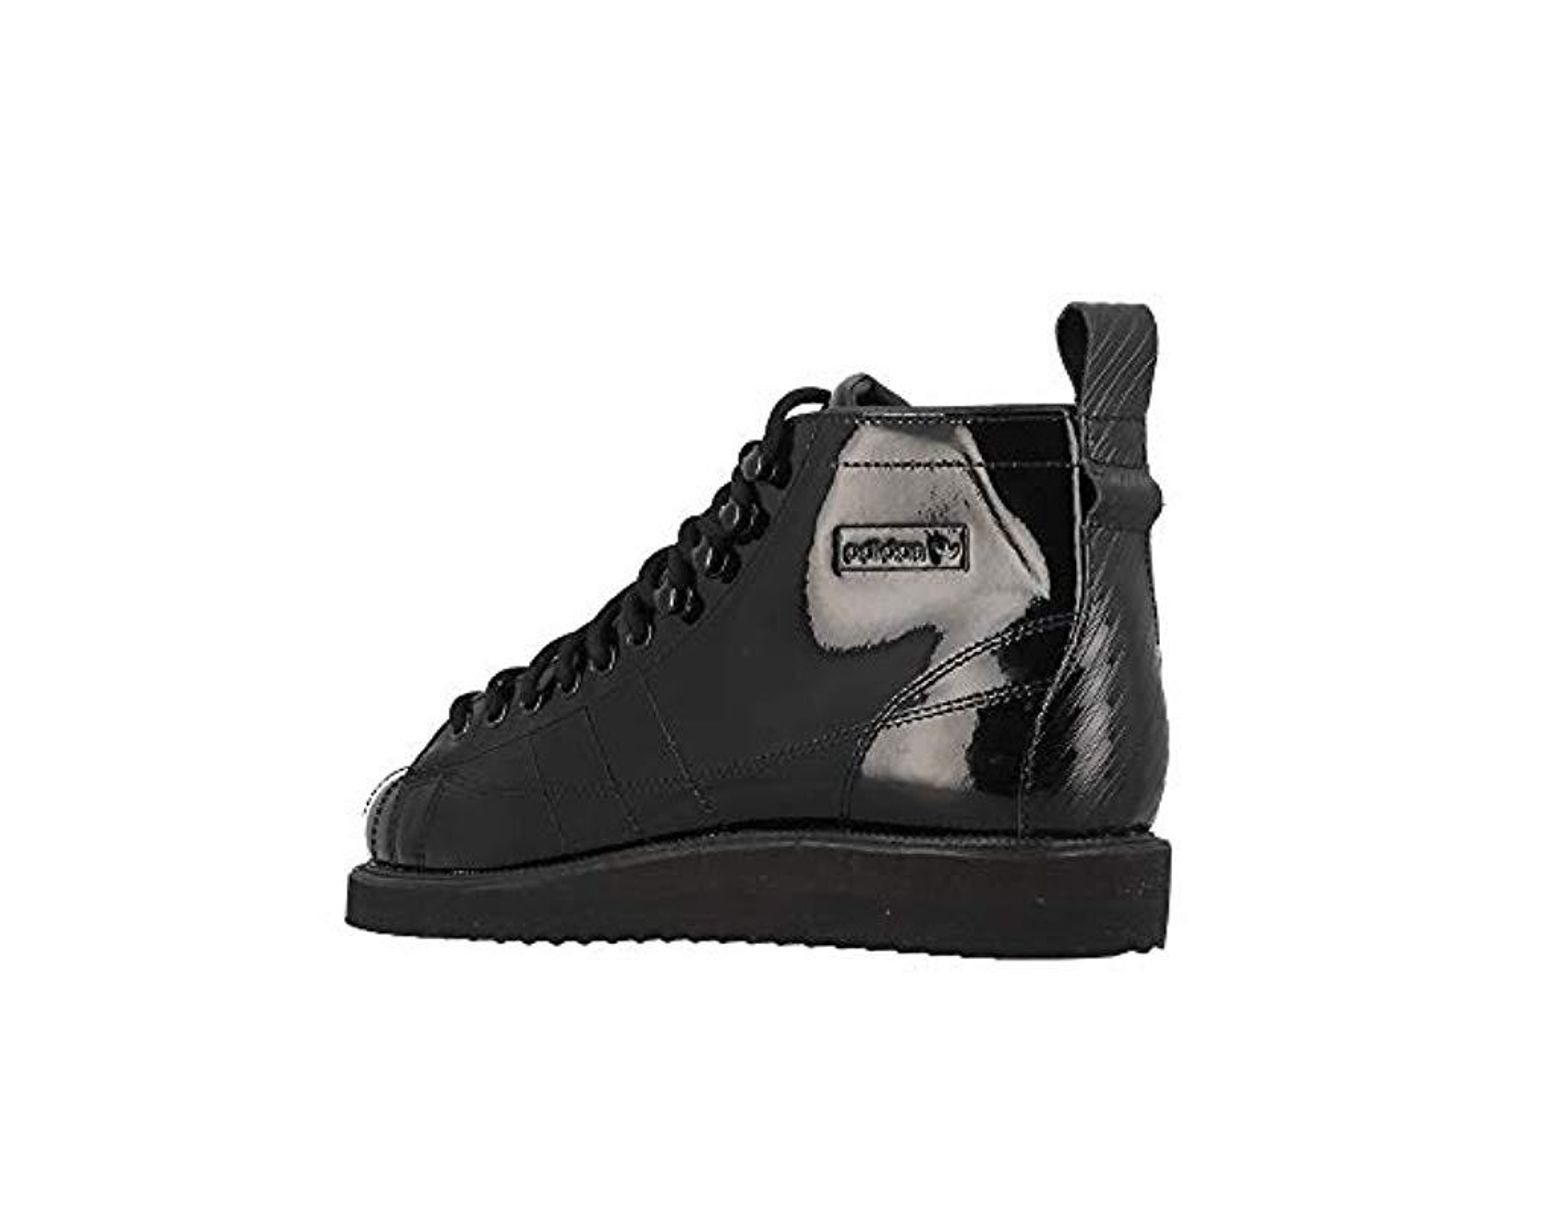 nouveau style 080ca d37b3 adidas Chaussures Femme Uperstar in Black - Lyst